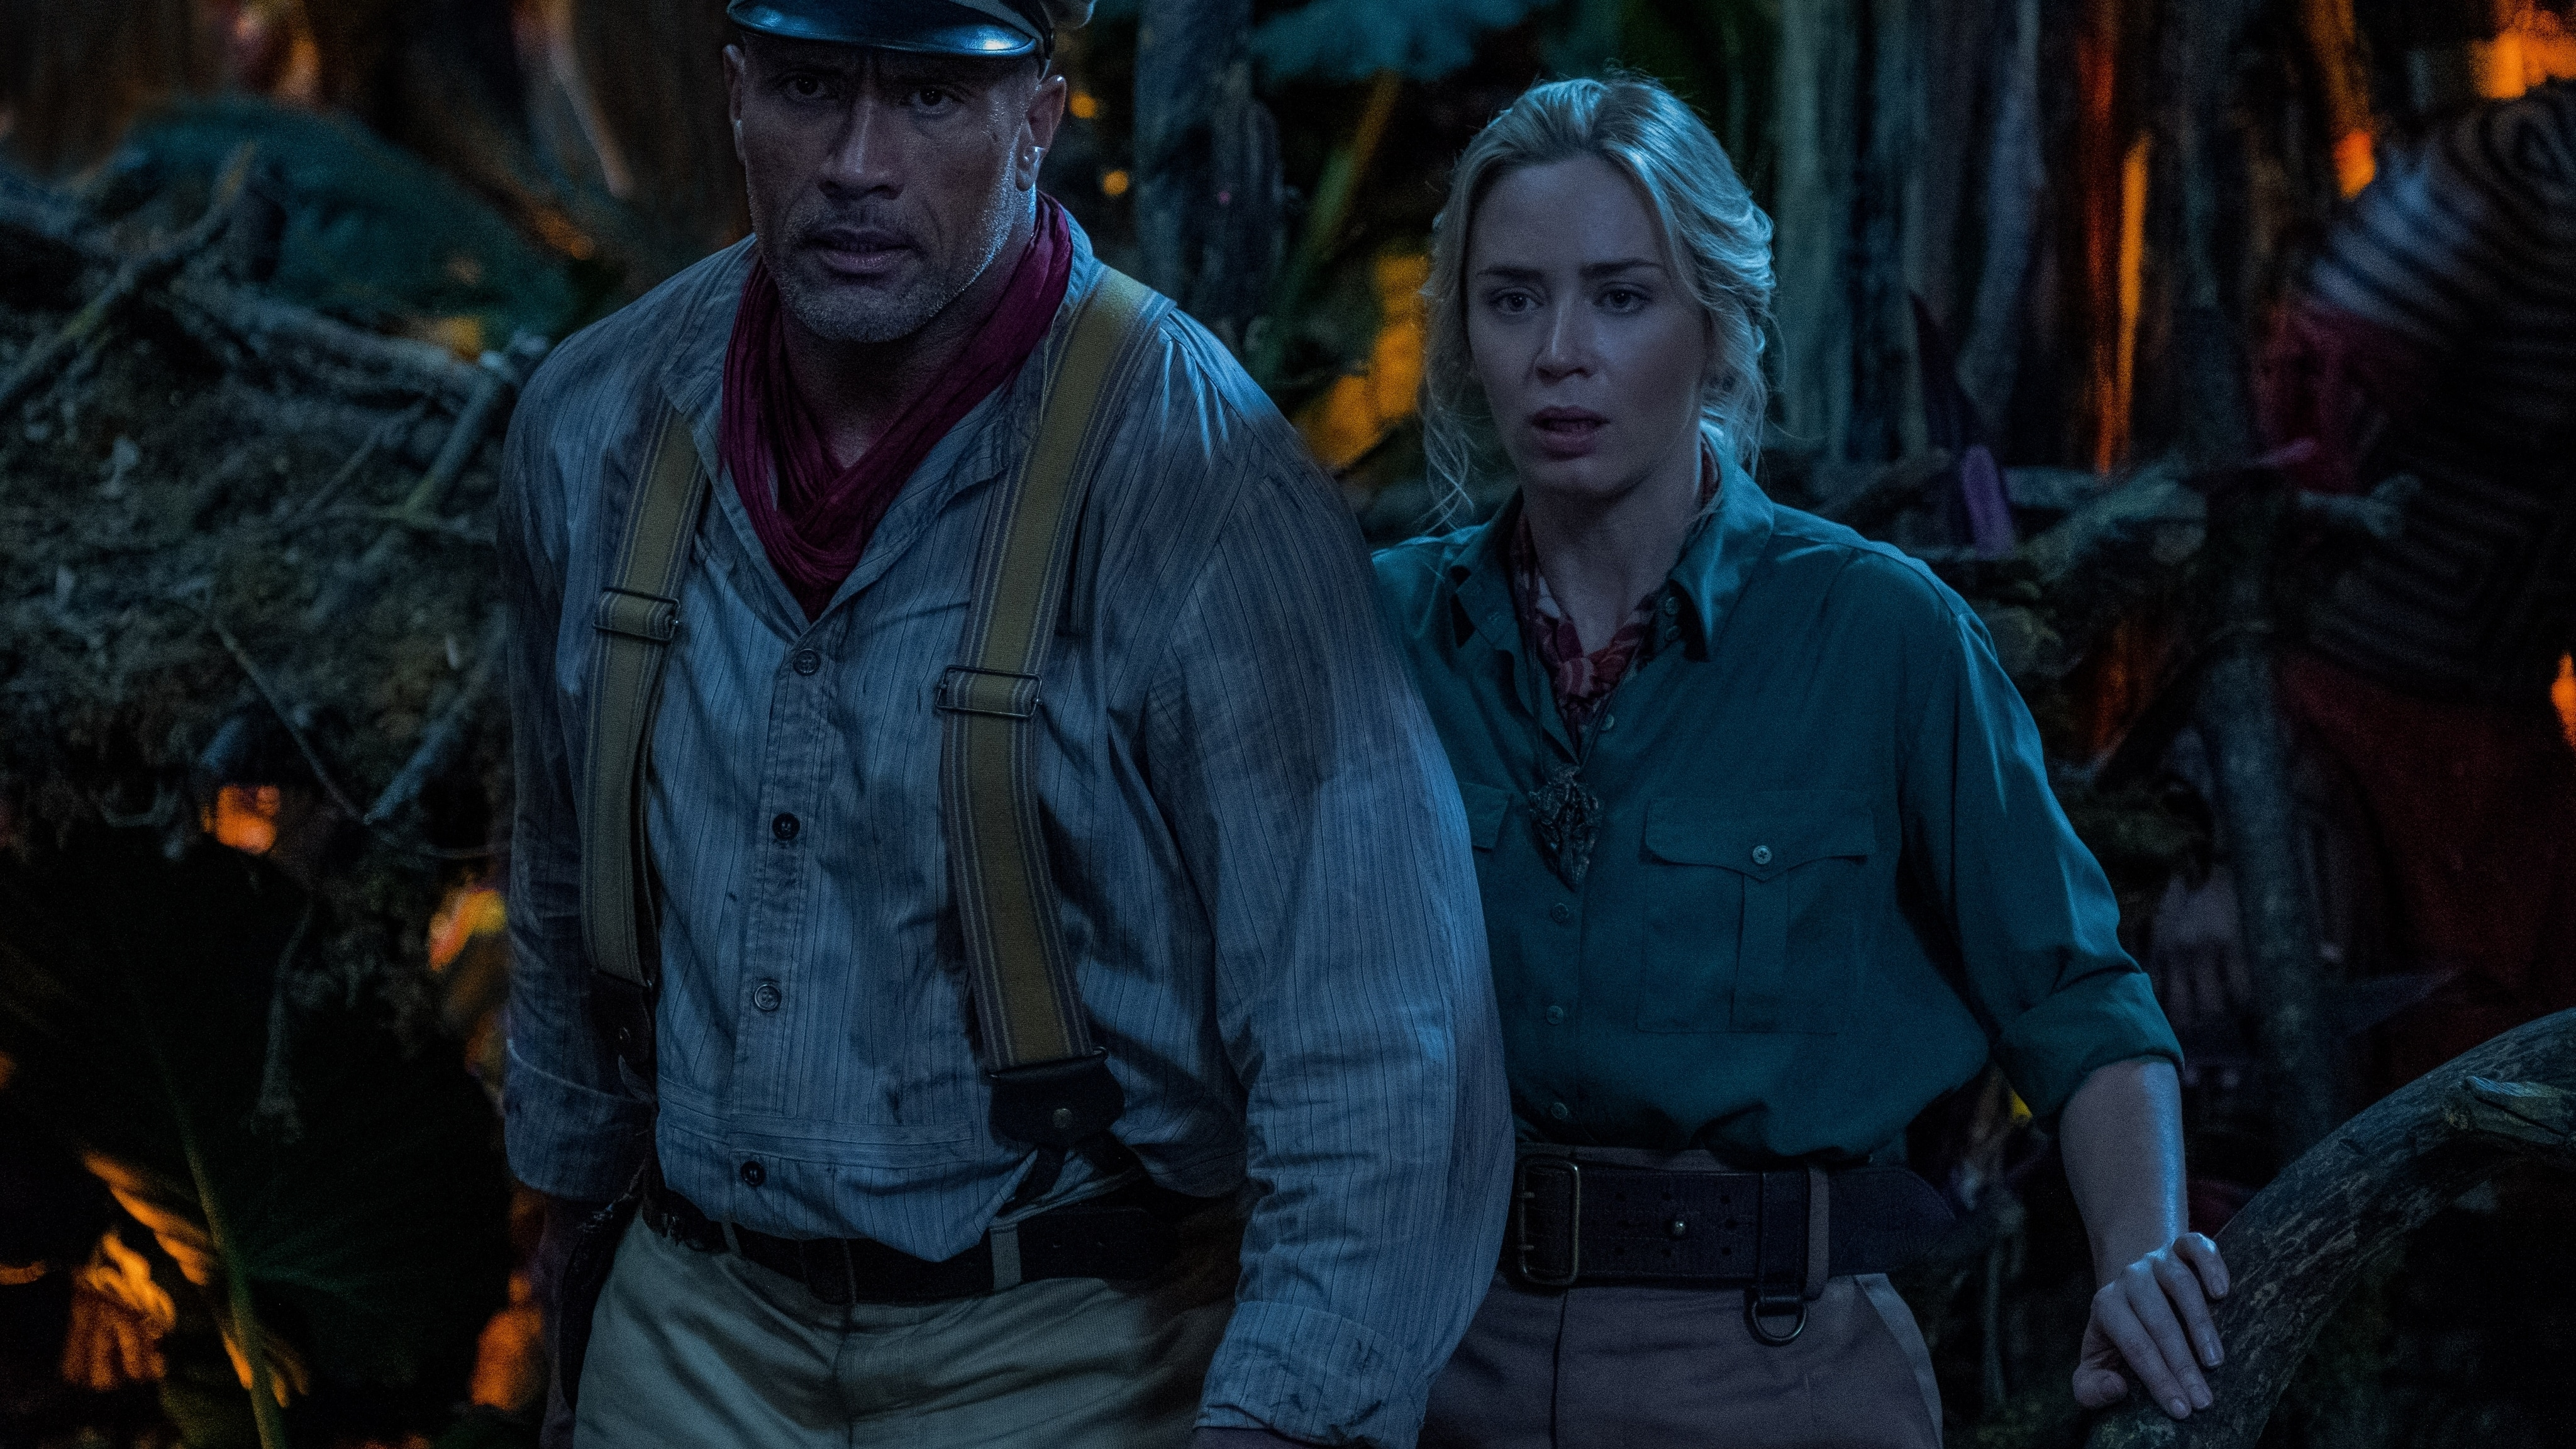 Dwyane Johnson and Emily Blunt appear side by side in The Jungle Cruise film